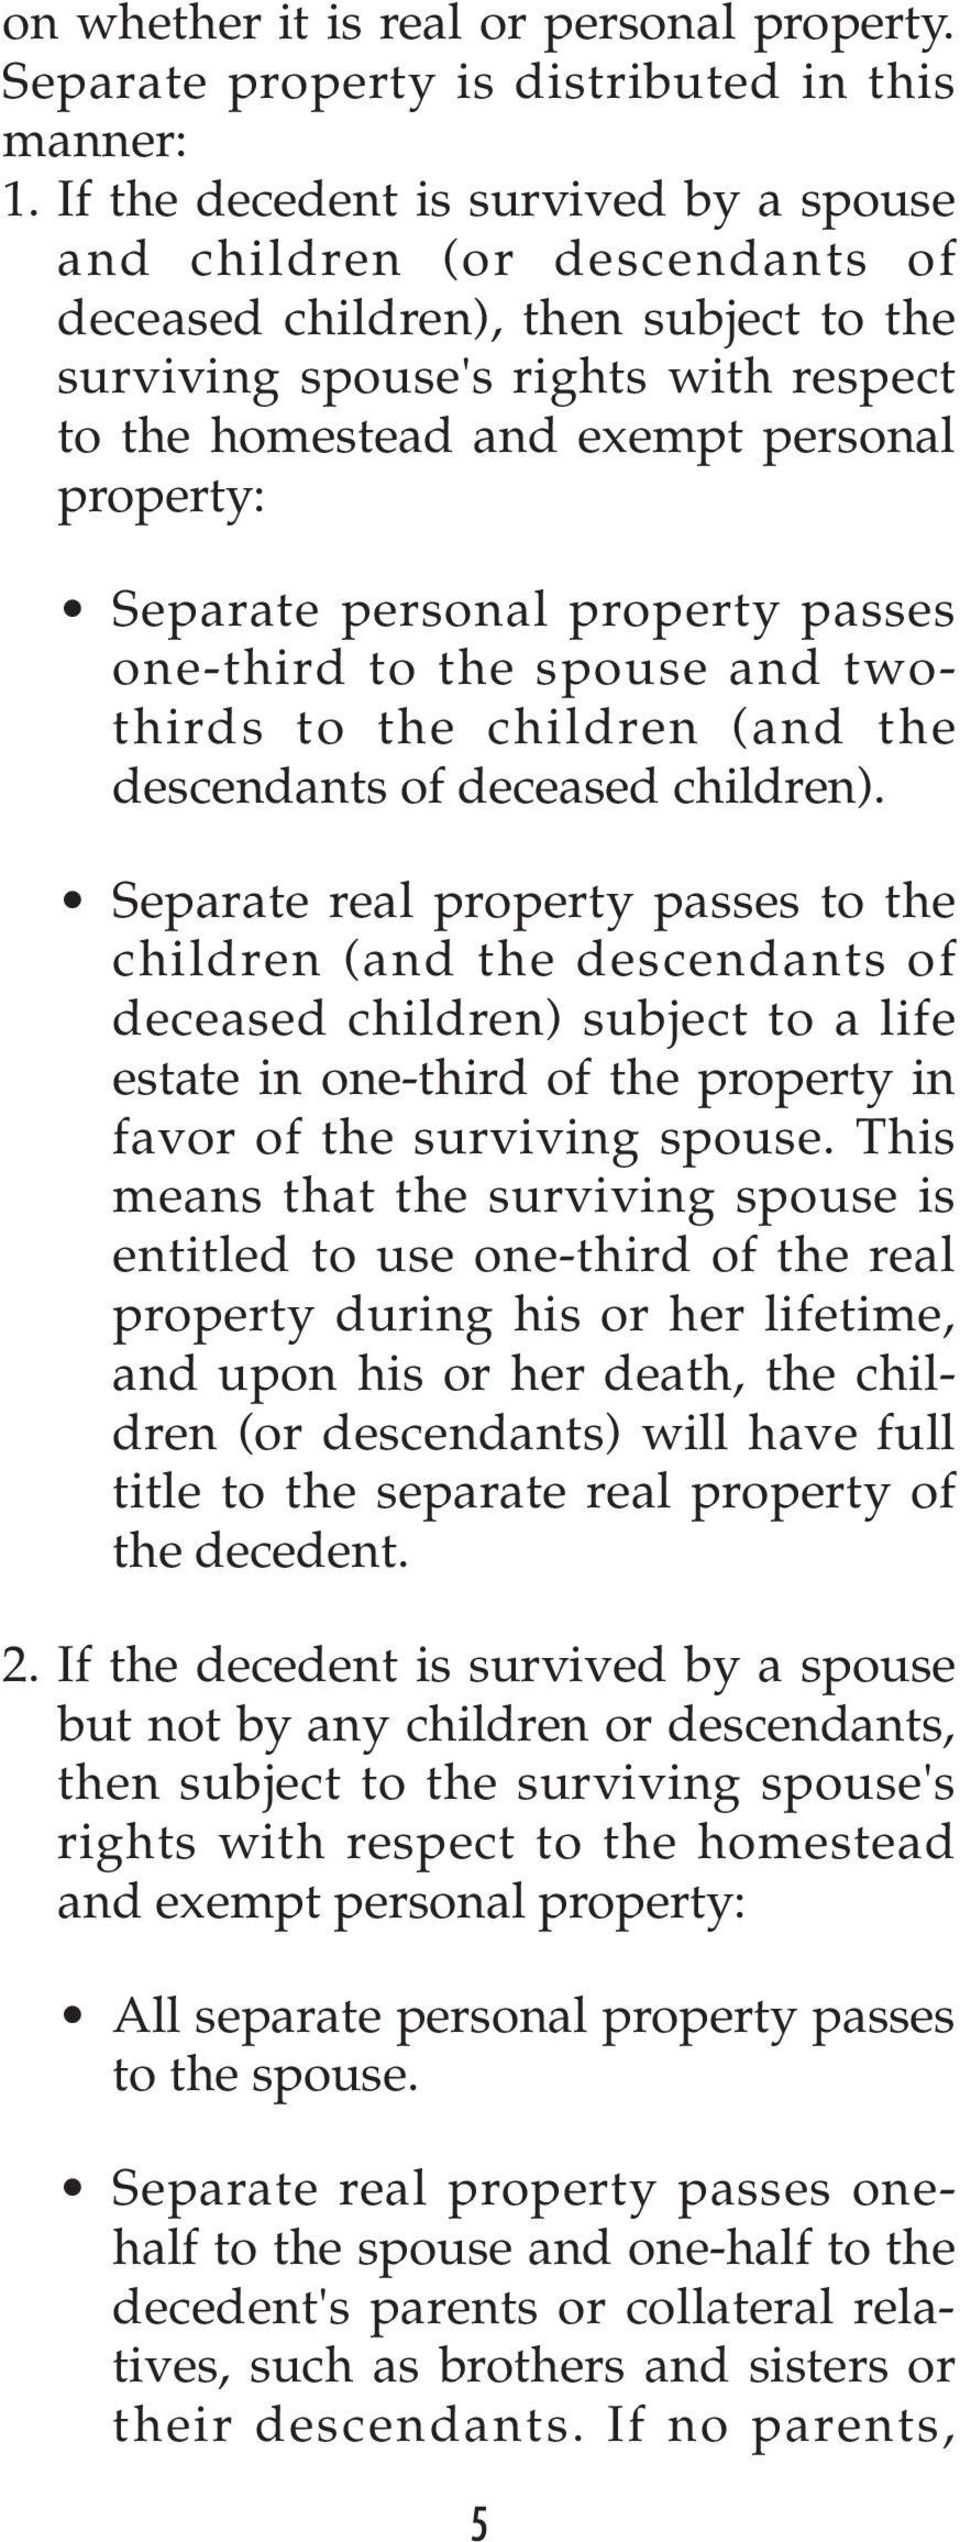 Separate personal property passes one-third to the spouse and twothirds to the children (and the descendants of deceased children).